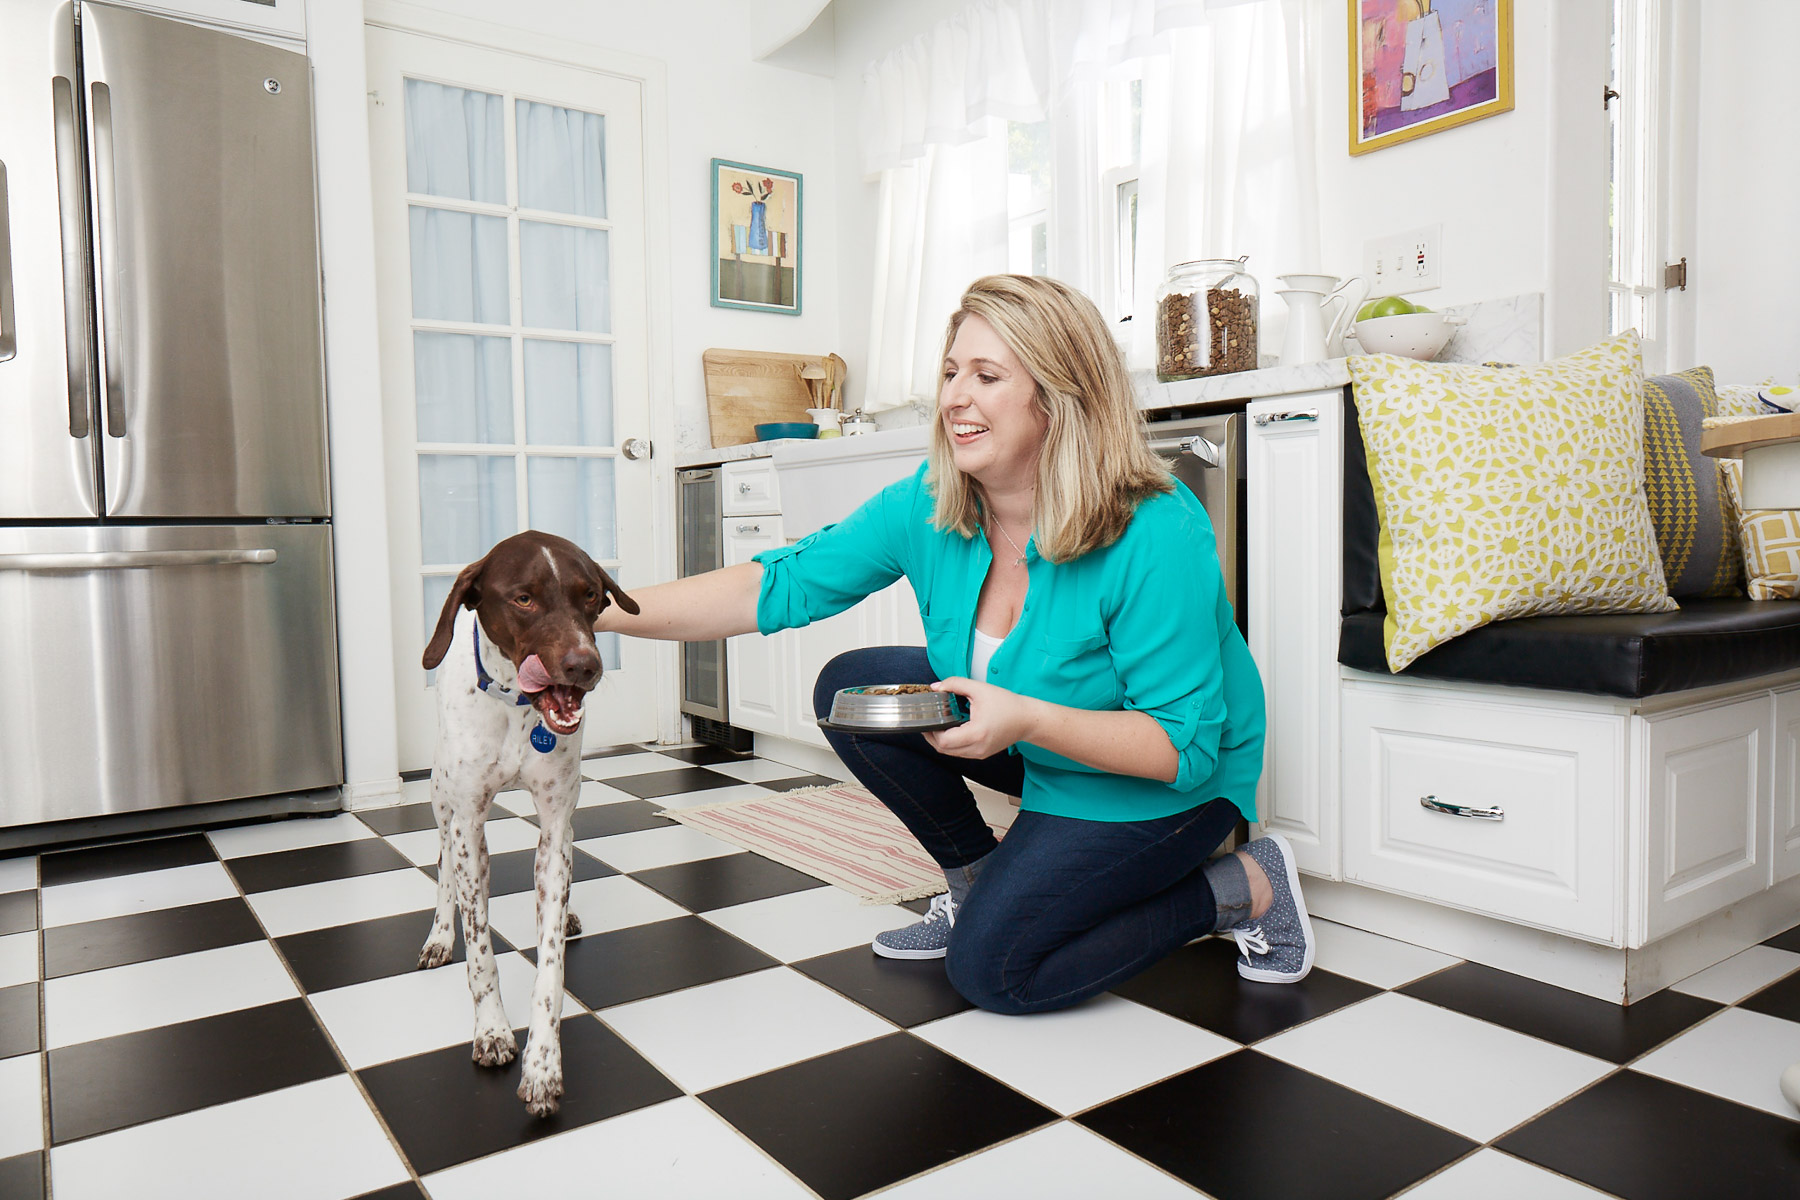 commercial-animal-photographer-blond-woman-feeding-dog-kitchen.jpg